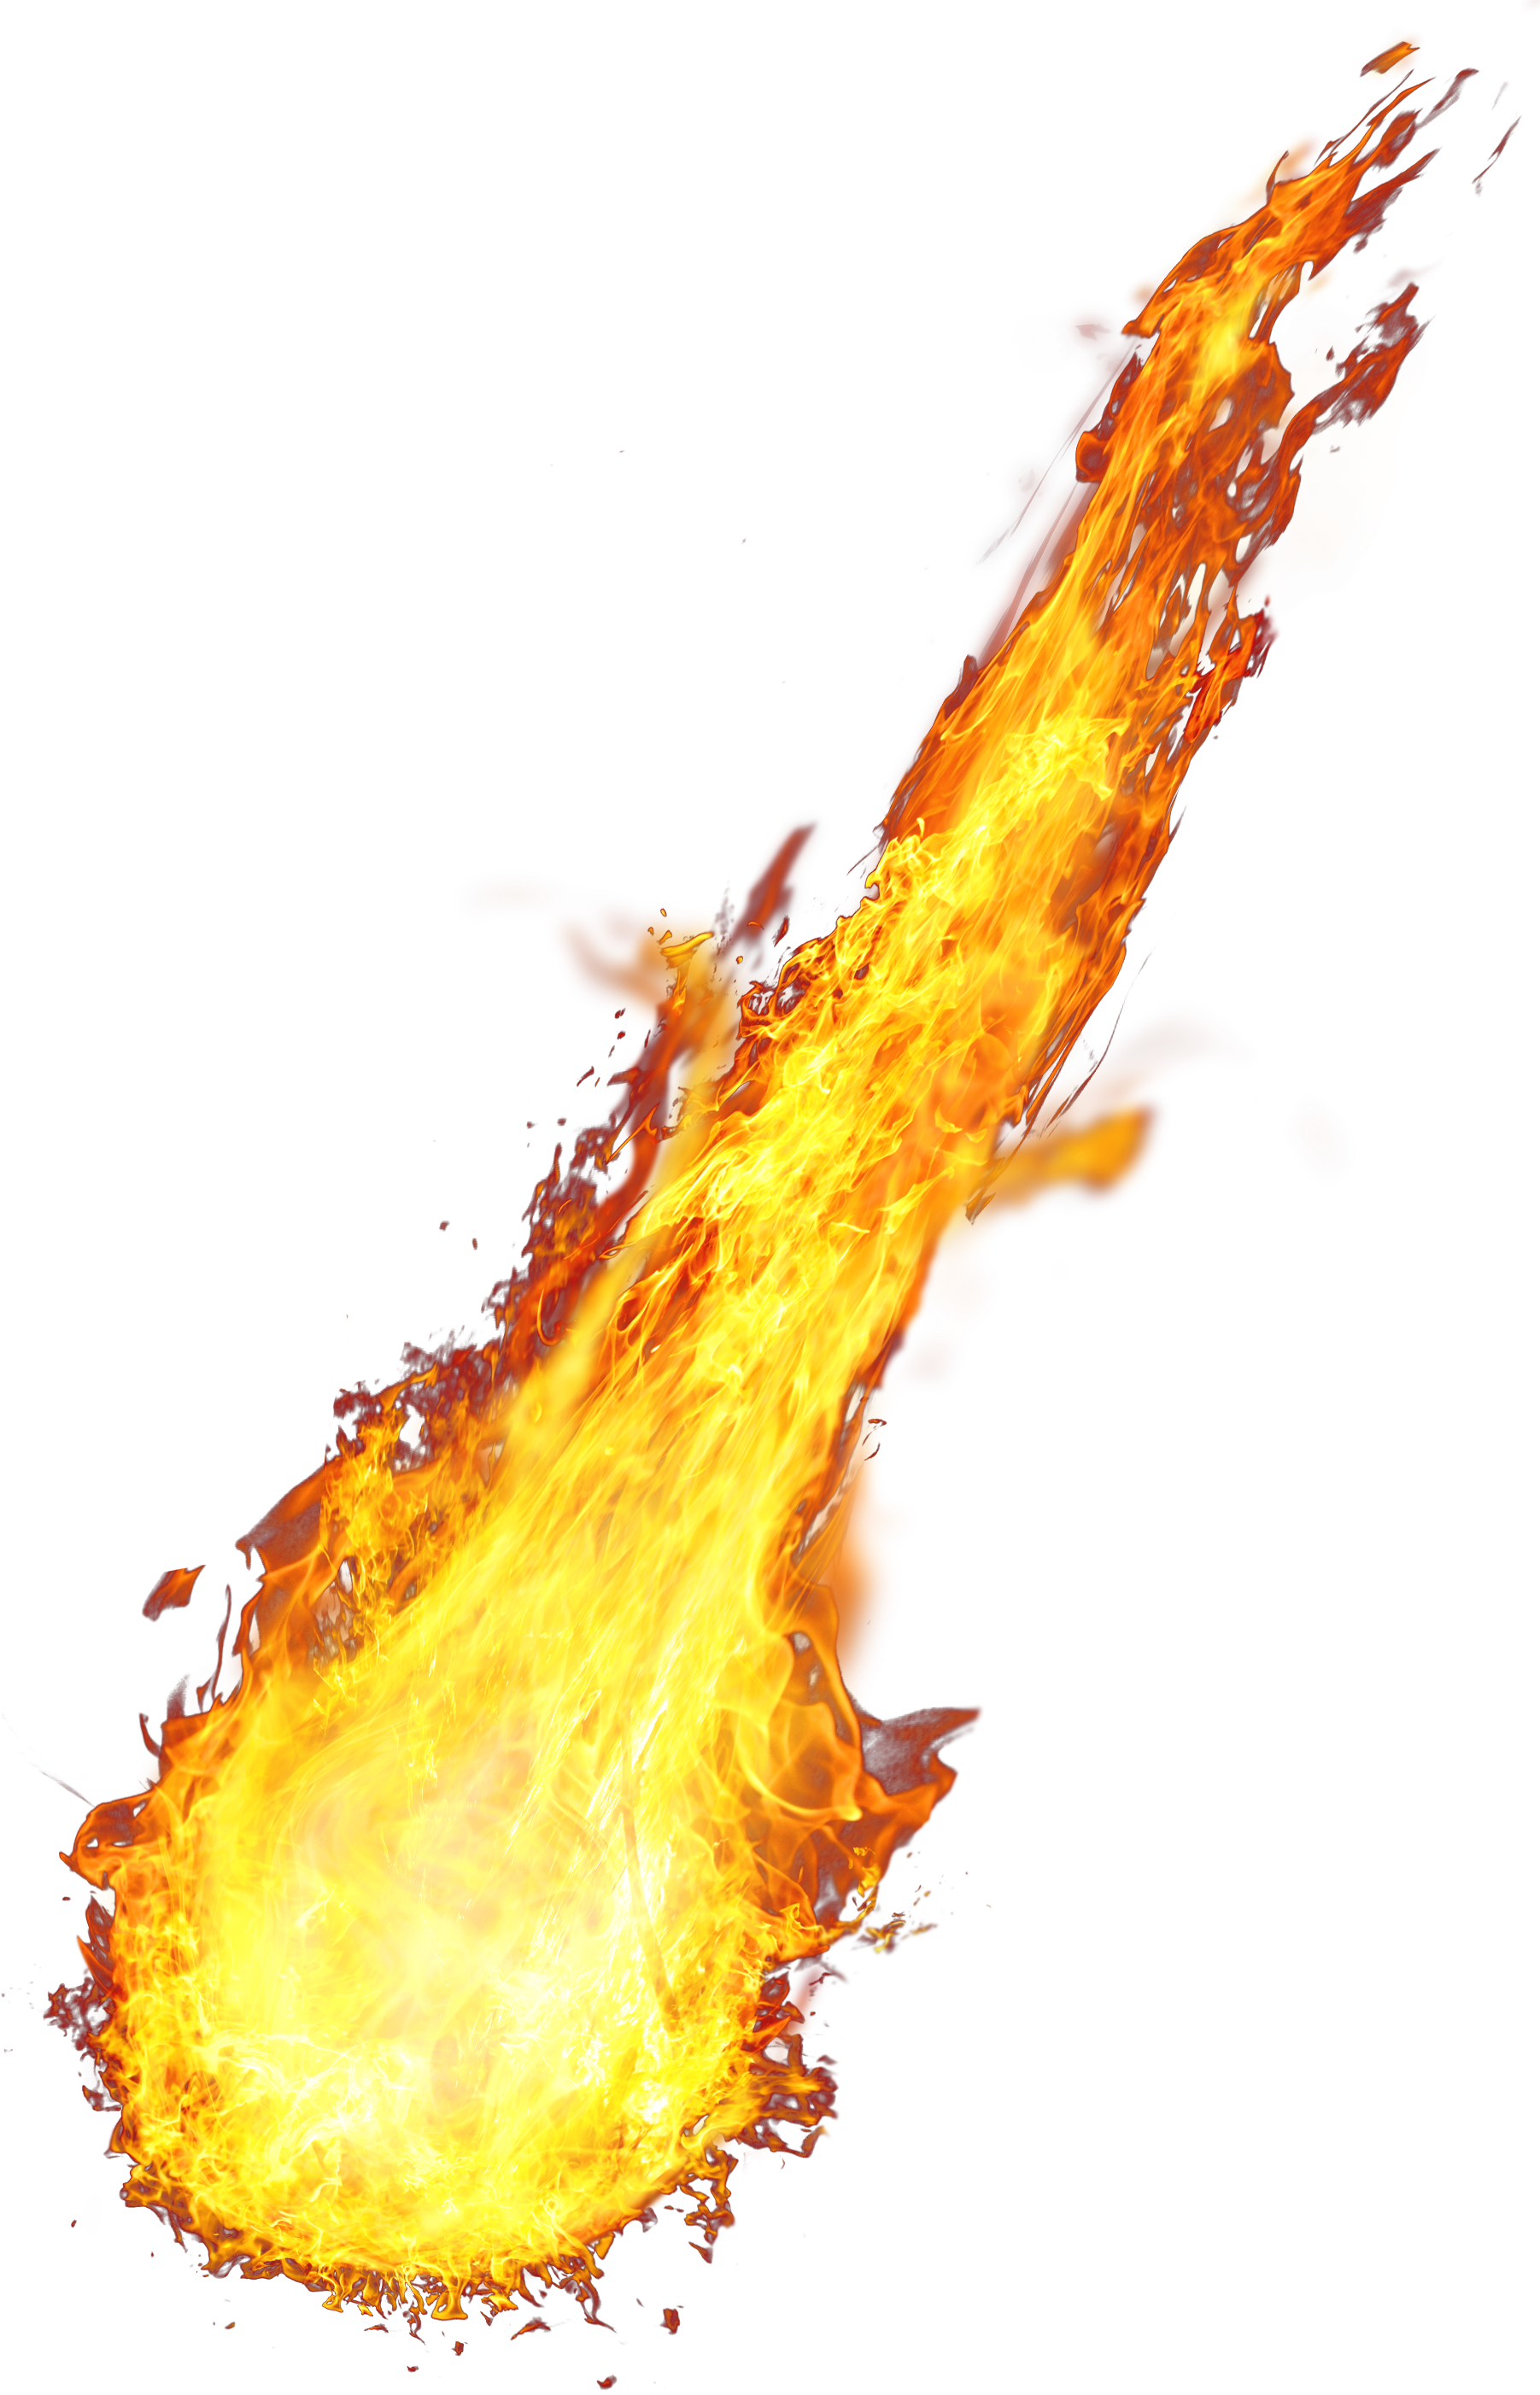 Asteroid Fire Clip Art Transparent